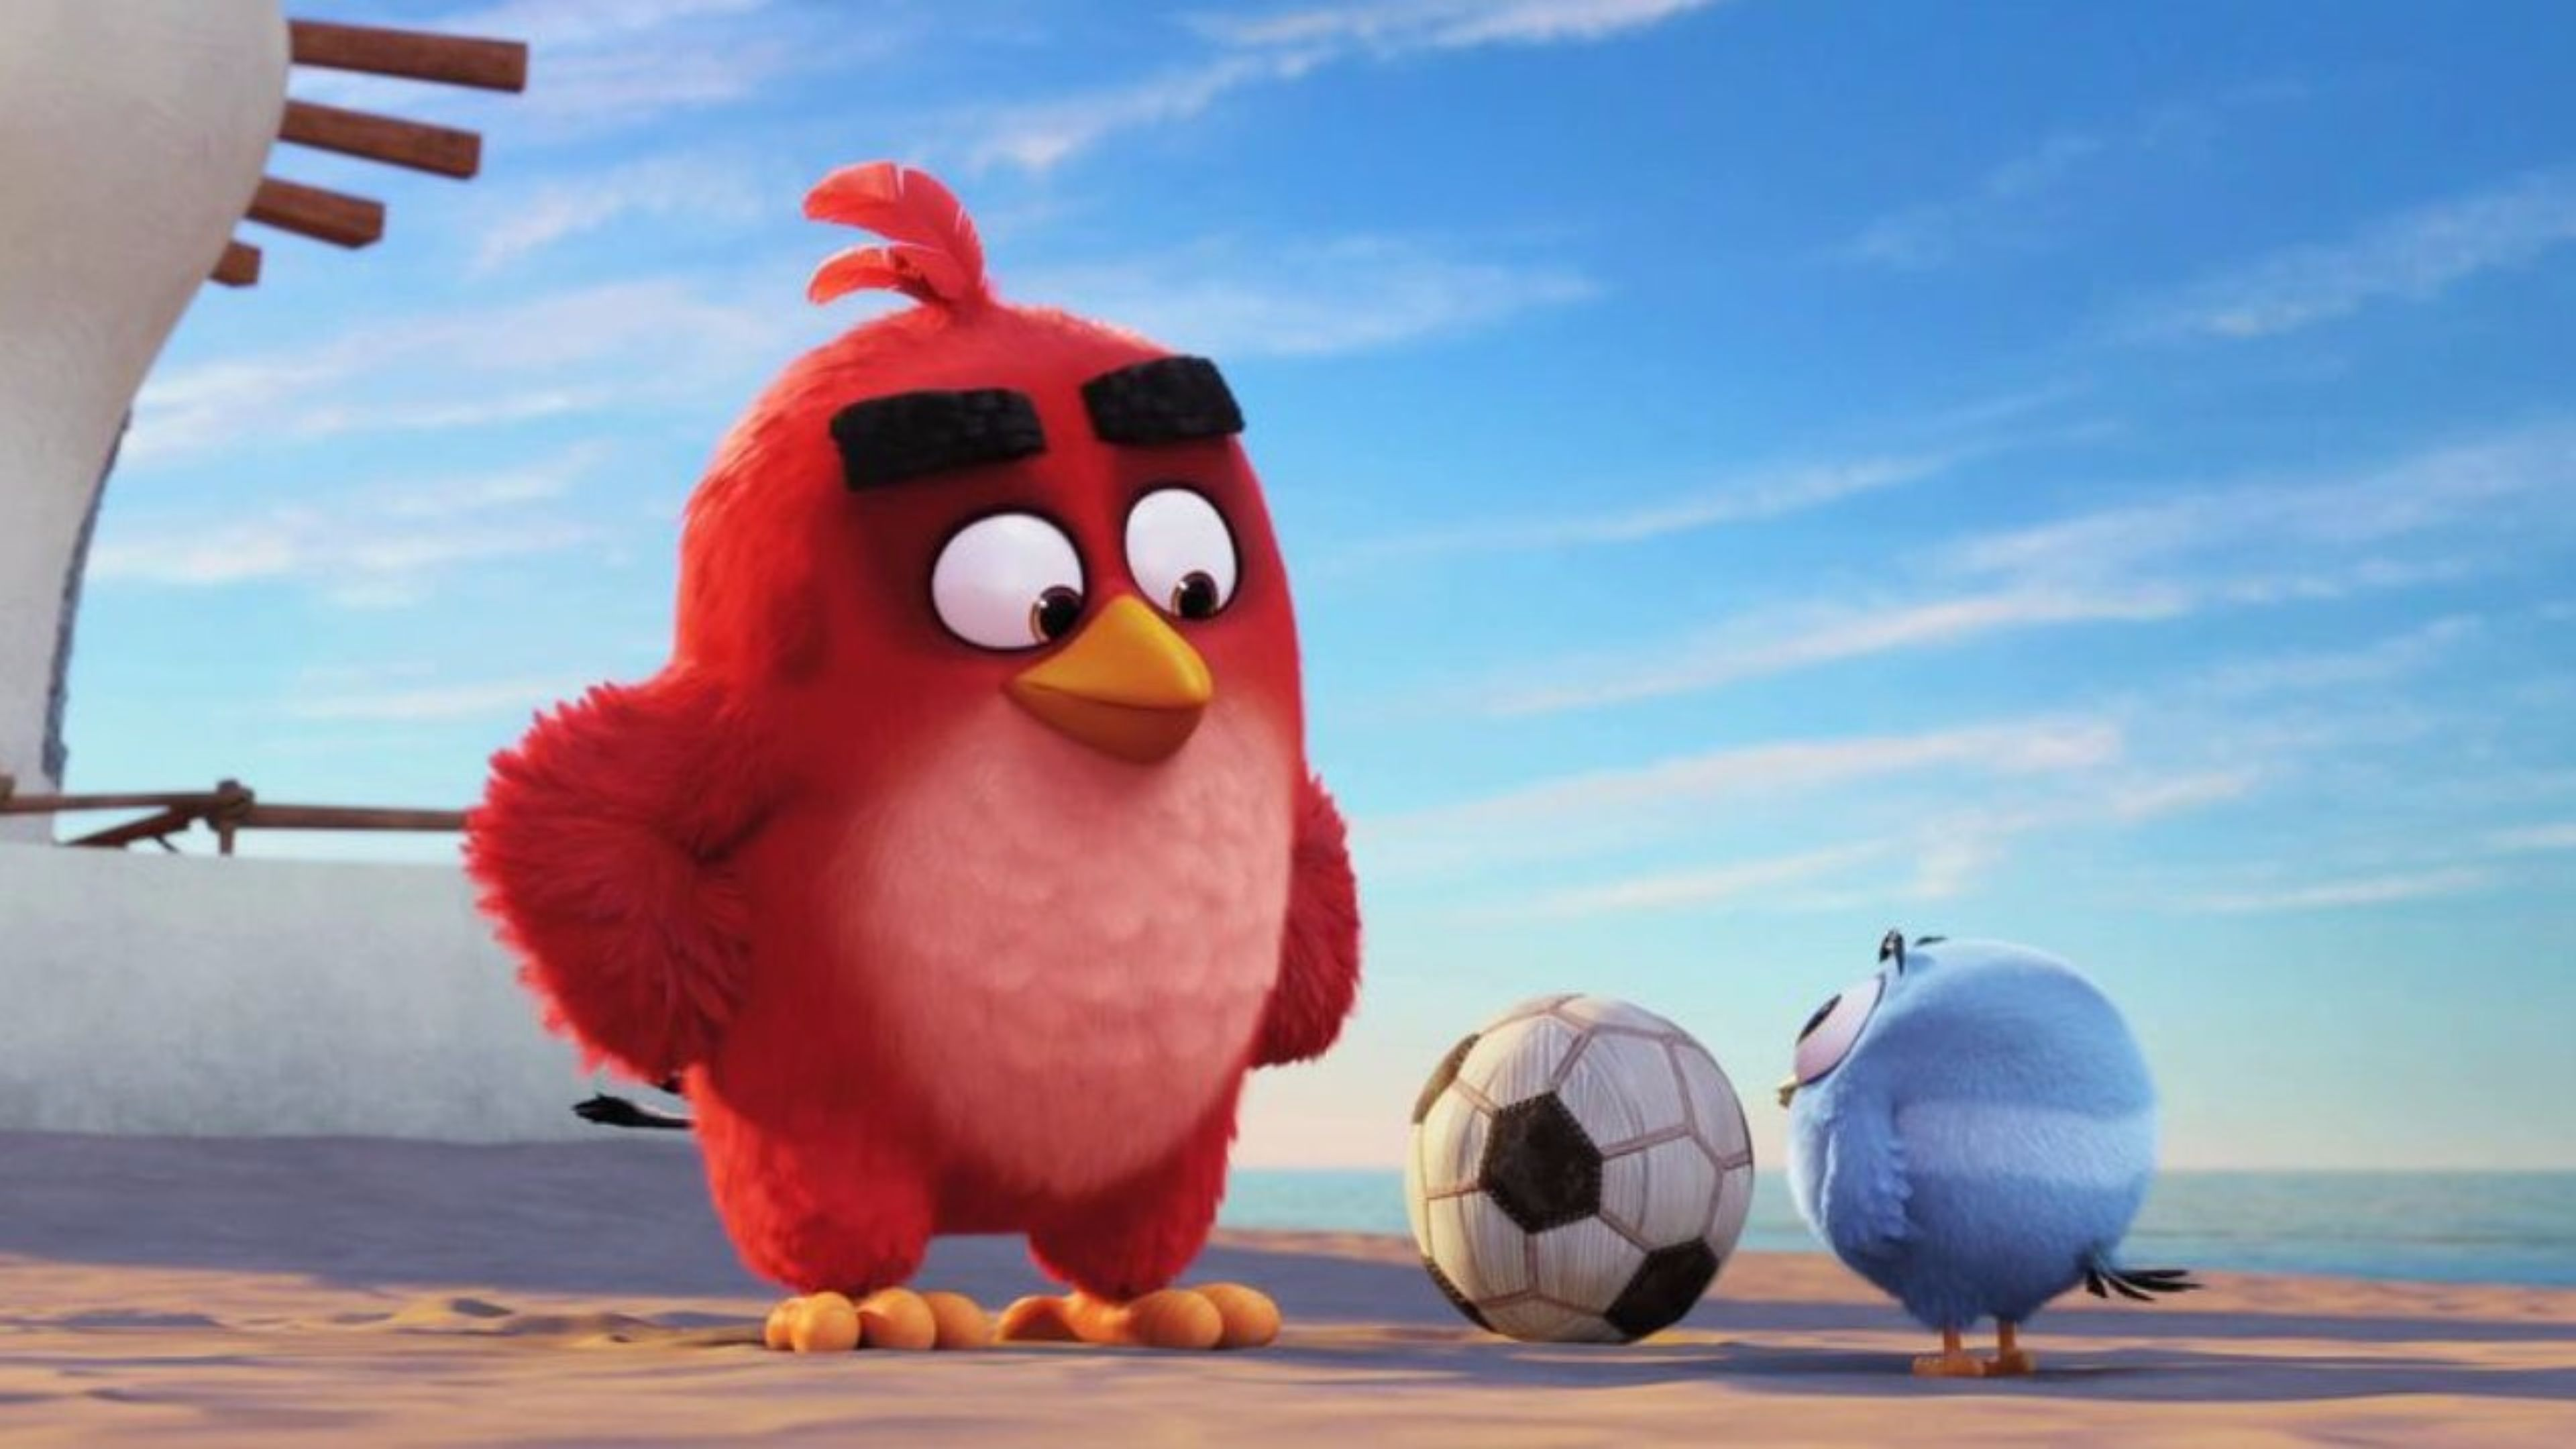 The Angry Birds Movie Full Hd Wallpapers